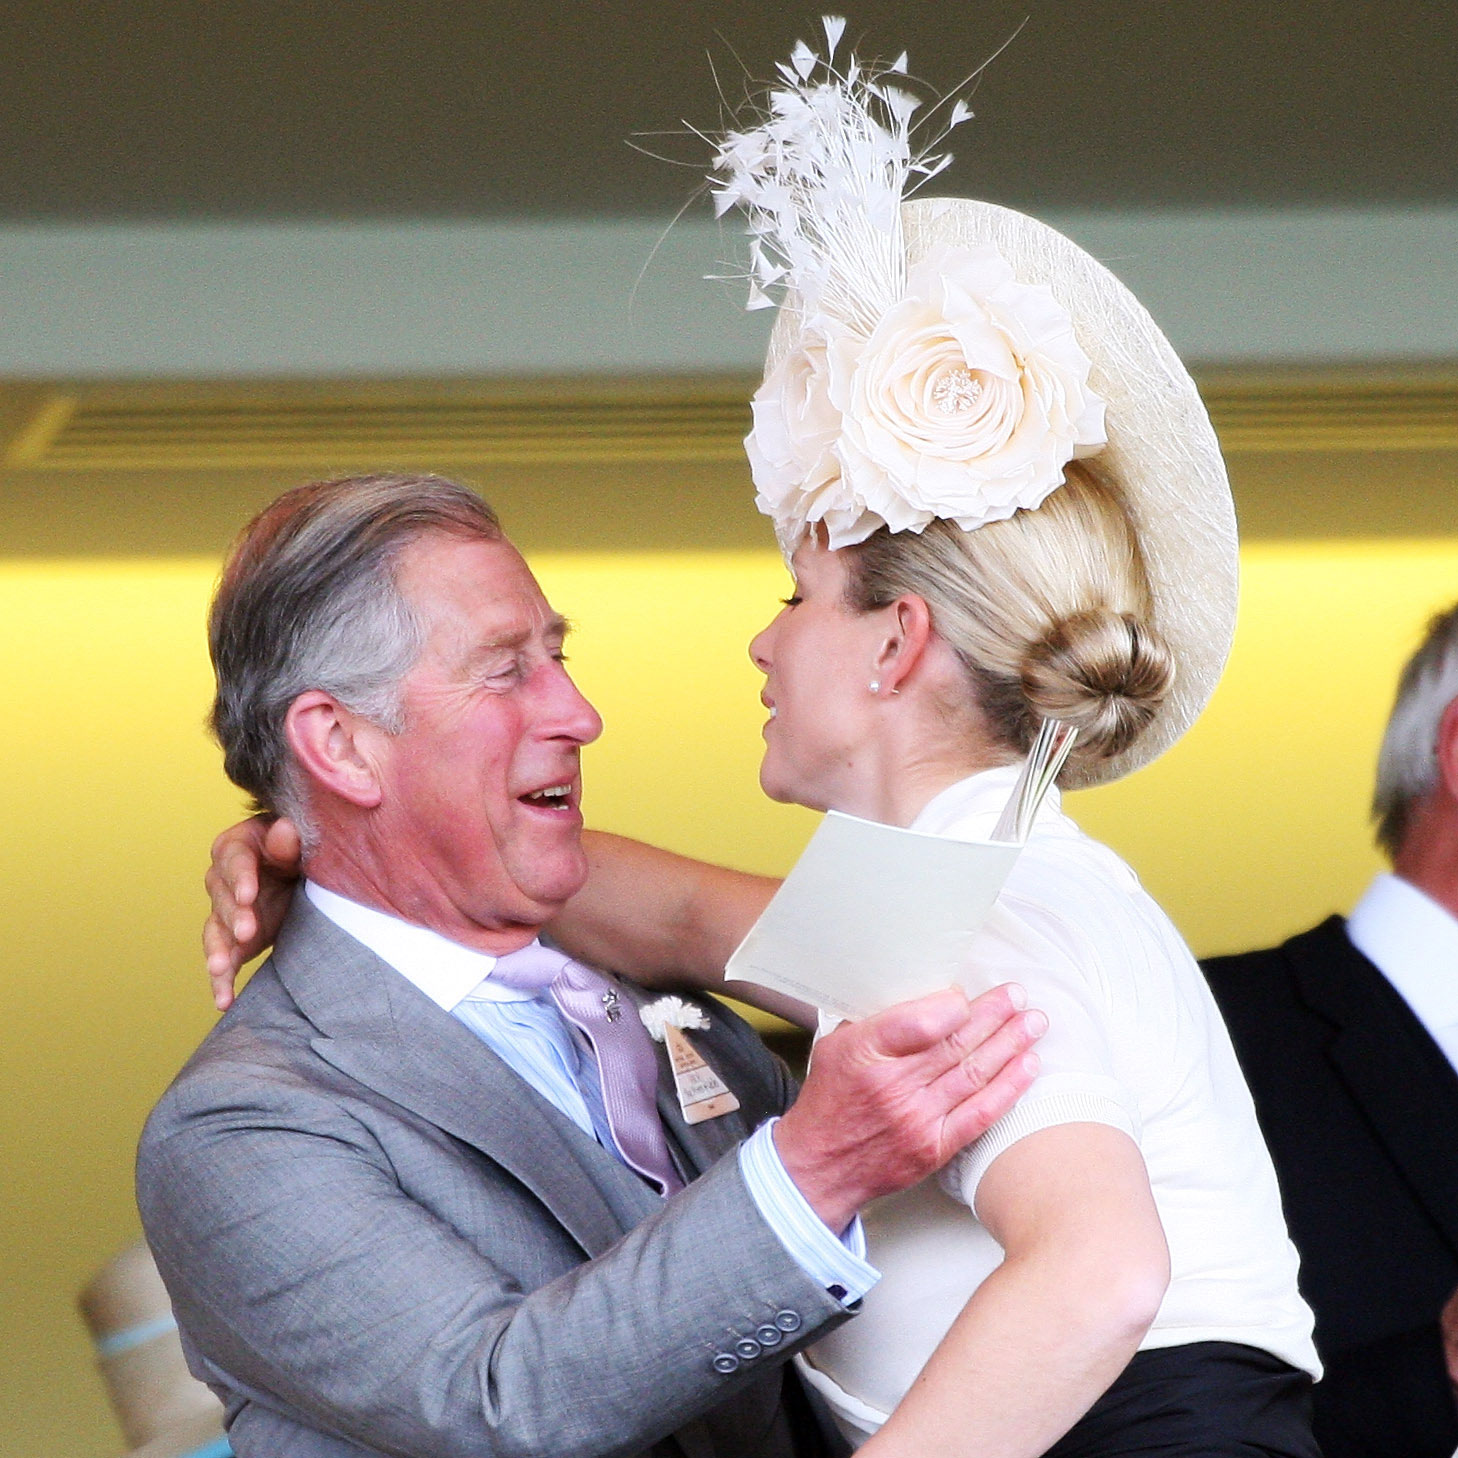 Zara gave her uncle Charles a hug at the 2009 Royal Ascot.